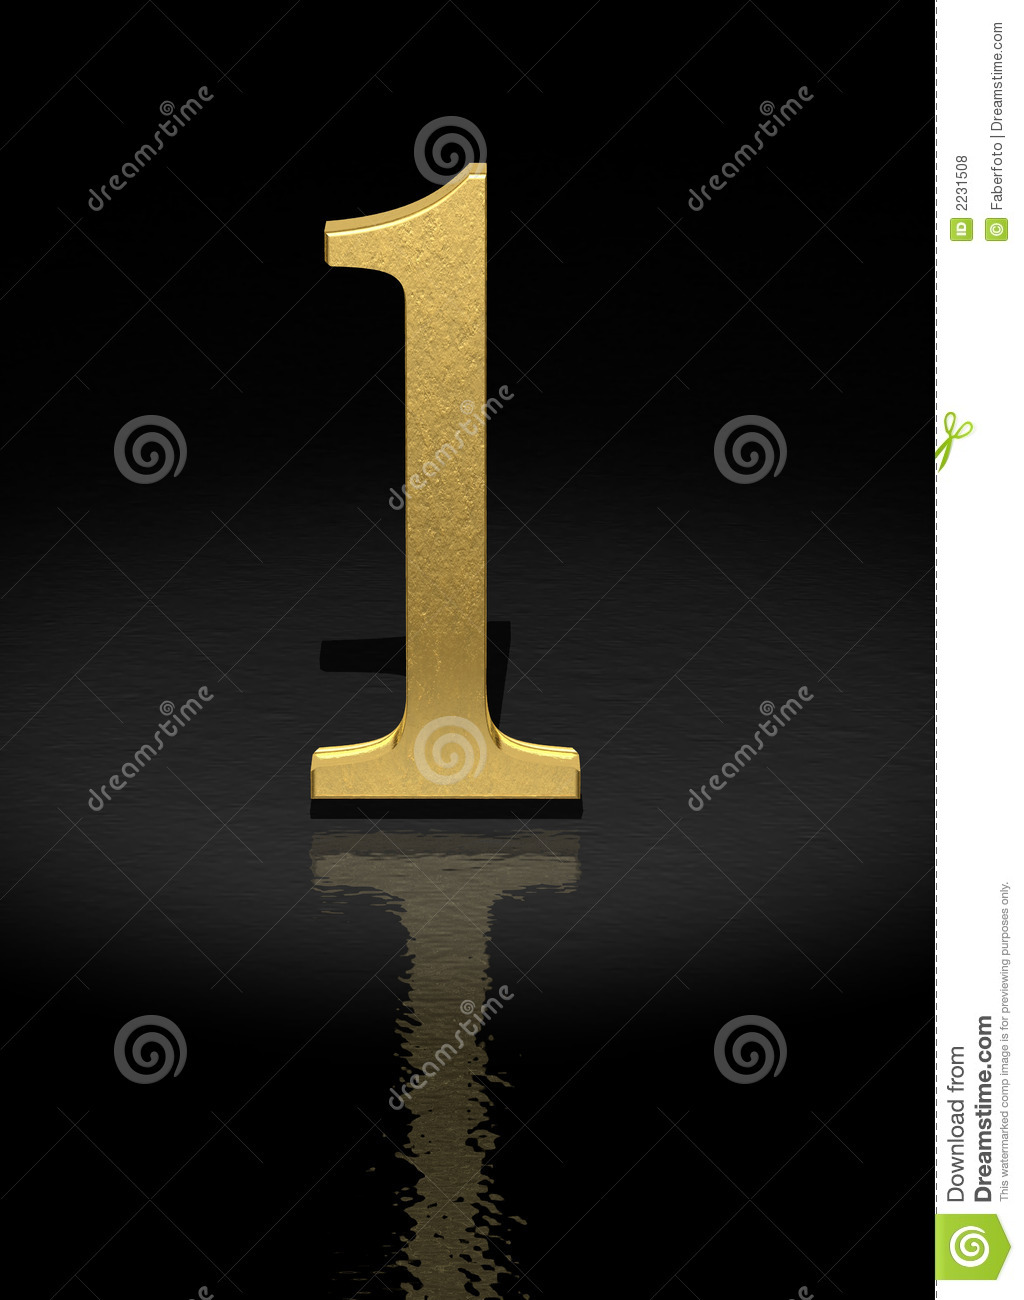 Number 1 Royalty Free Stock Photos - Image: 2231508: www.dreamstime.com/royalty-free-stock-photos-number-1-image2231508